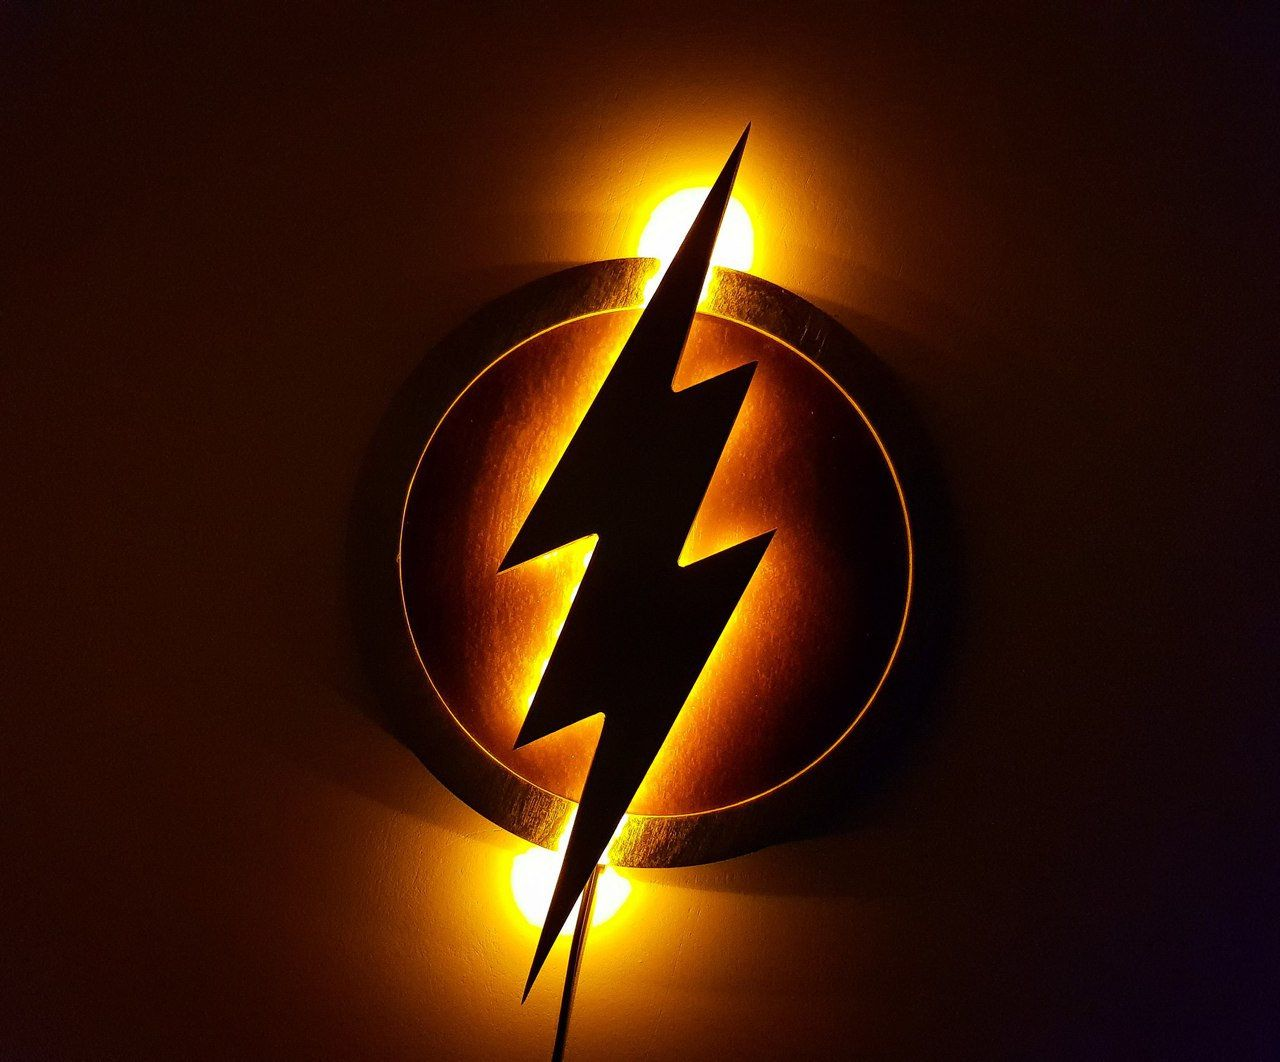 Flash lamp Night lights, LED Flash Logo, Justice League The Flash LED Illuminated Superhero Logo. Material: 6 mm thick plywood. Dimensions (mm): 330 x 330 mm (13 x 13 inches). Power adapter: from 220/110 to 12 V, the length of the wire is 1.5 meters. It comes with a sw